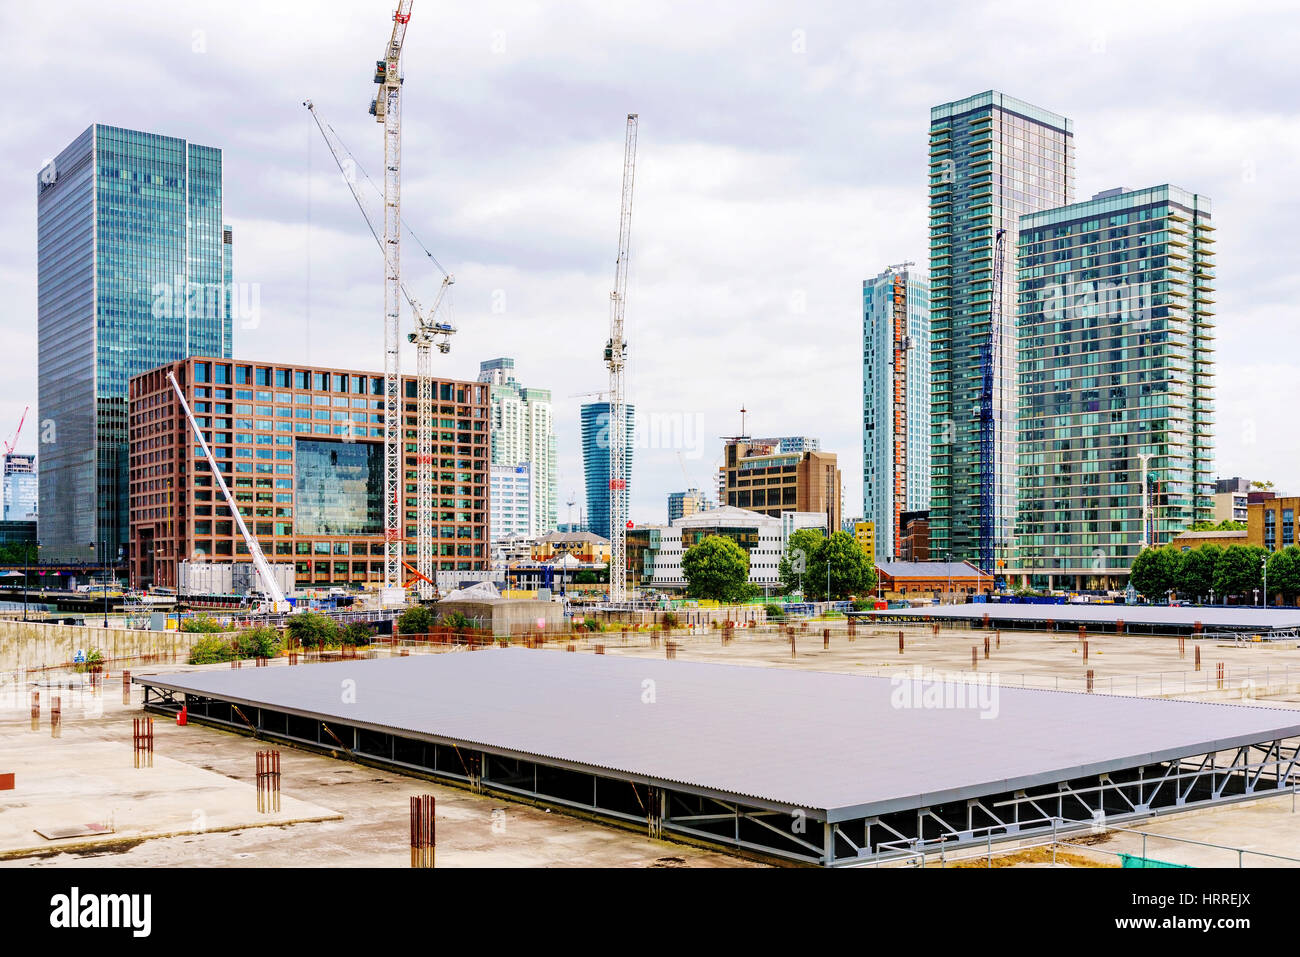 LONDON - AUGUST, 2016: This is a developing area of Canary Wharf financial district where new buildings will be - Stock Image